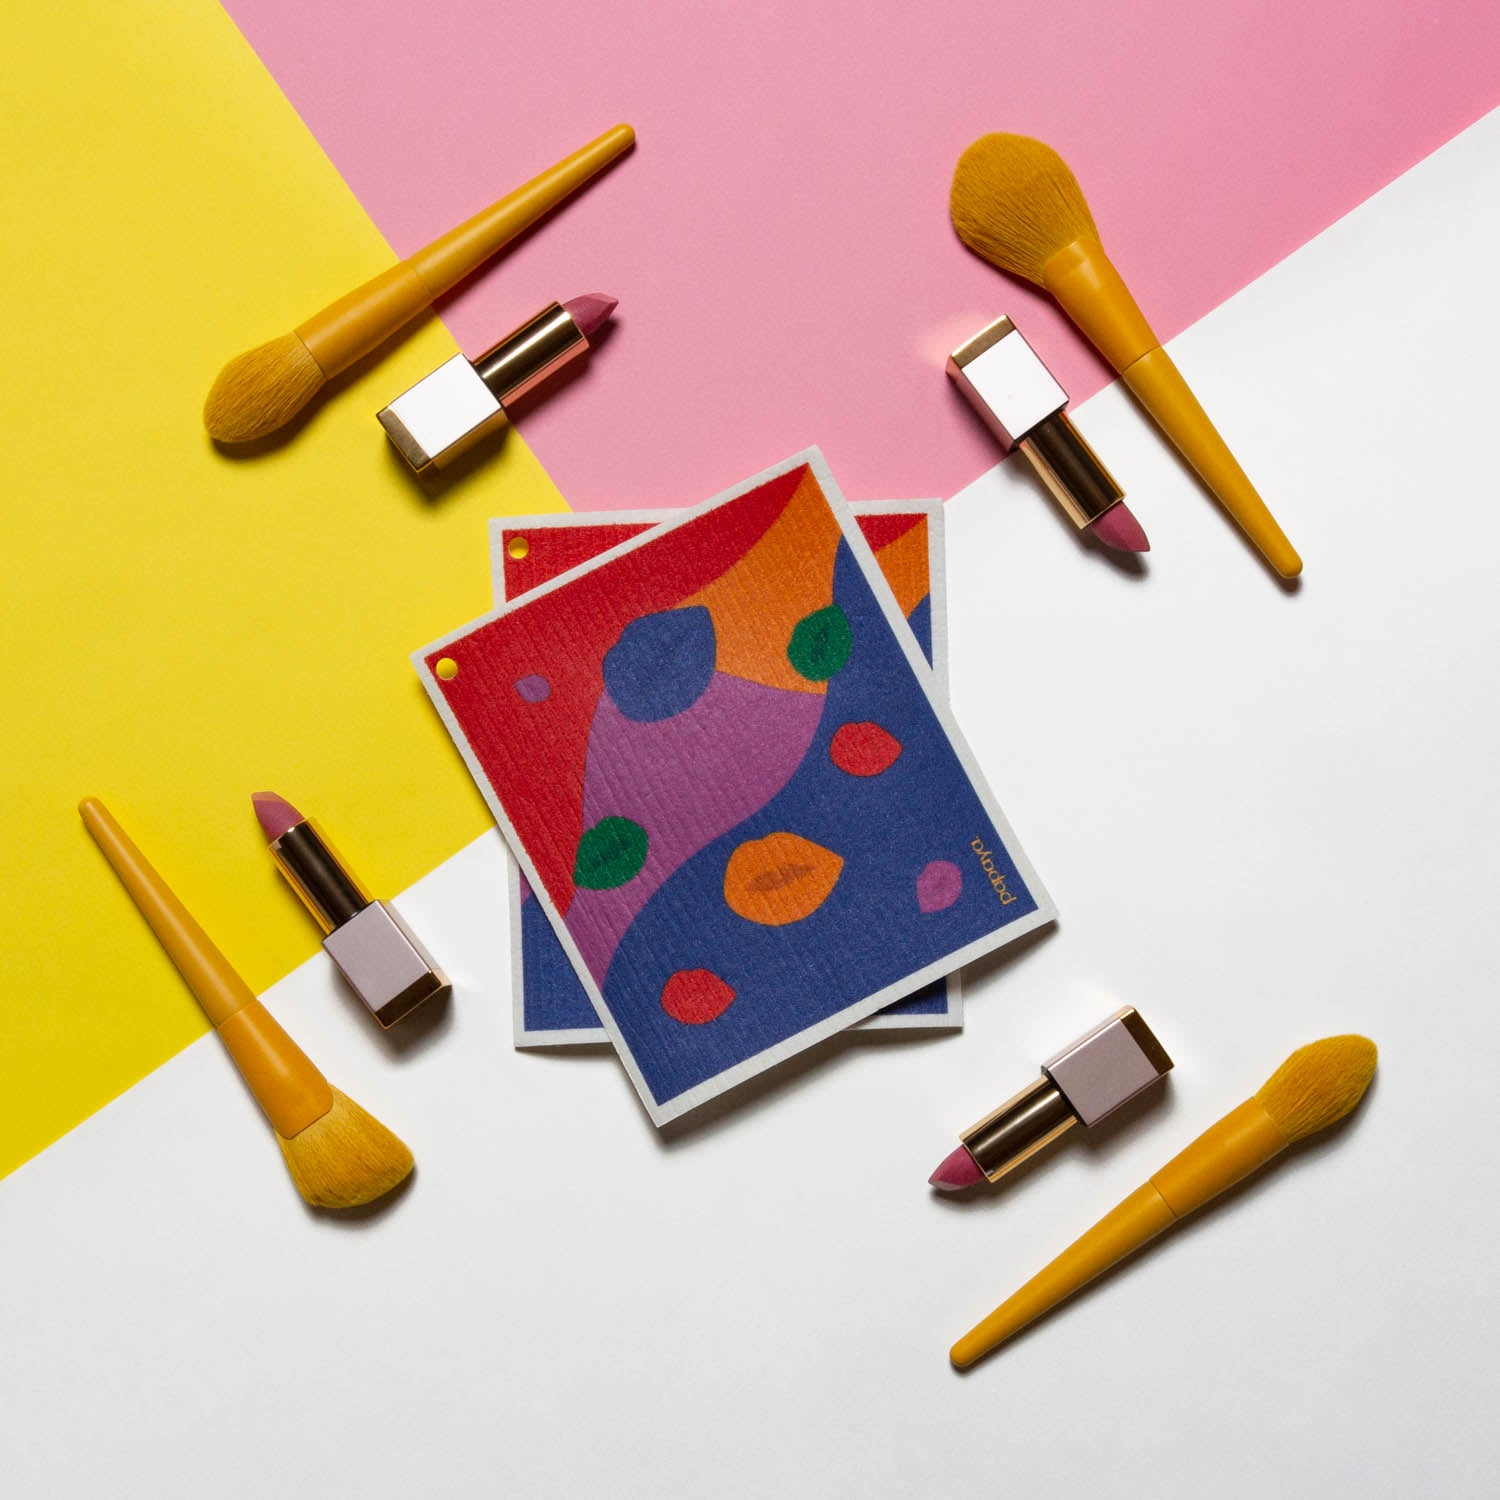 Two reusable paper towels in a colorful lip design surrounded by yellow makeup brushes and lipsticks